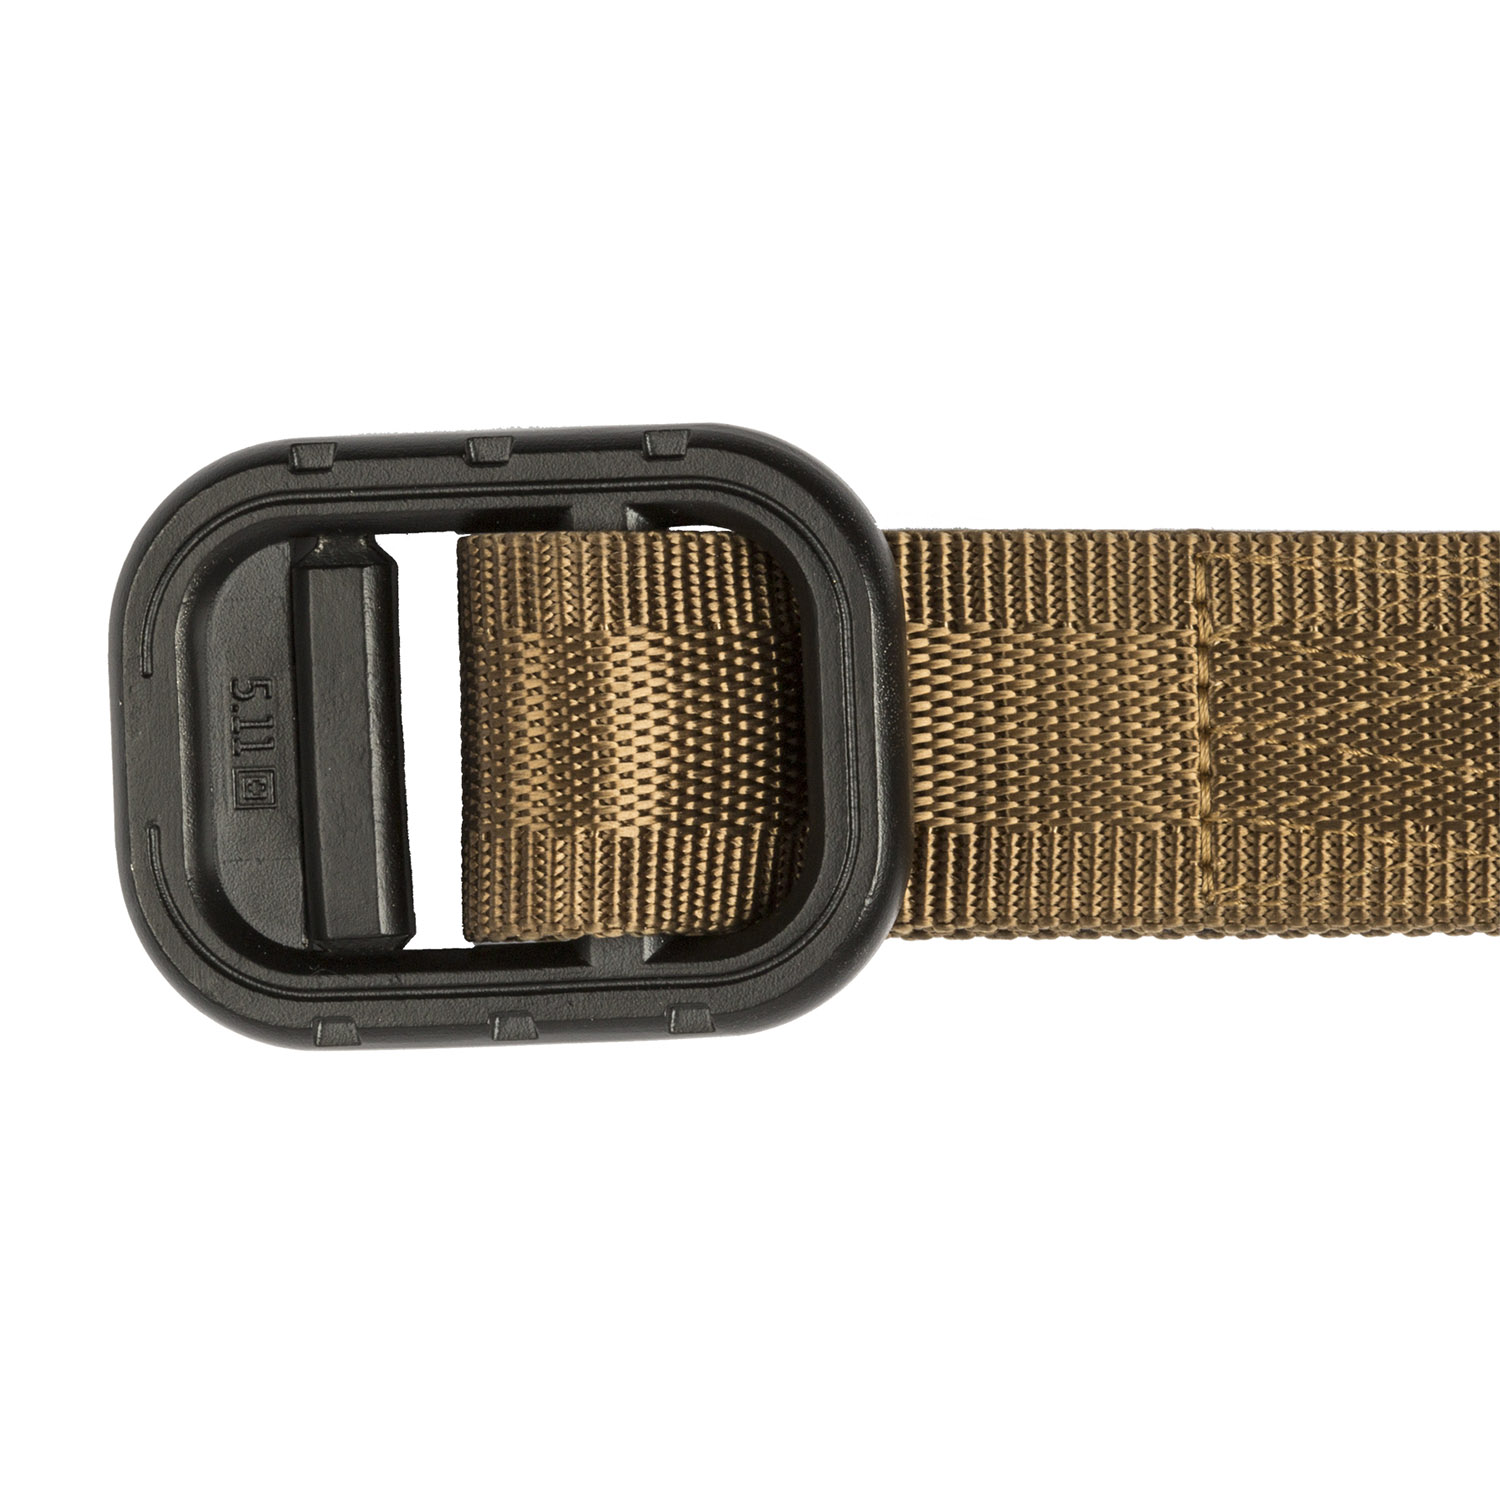 "5.11 Tactical Athena Belt - 1.25"" Wide"